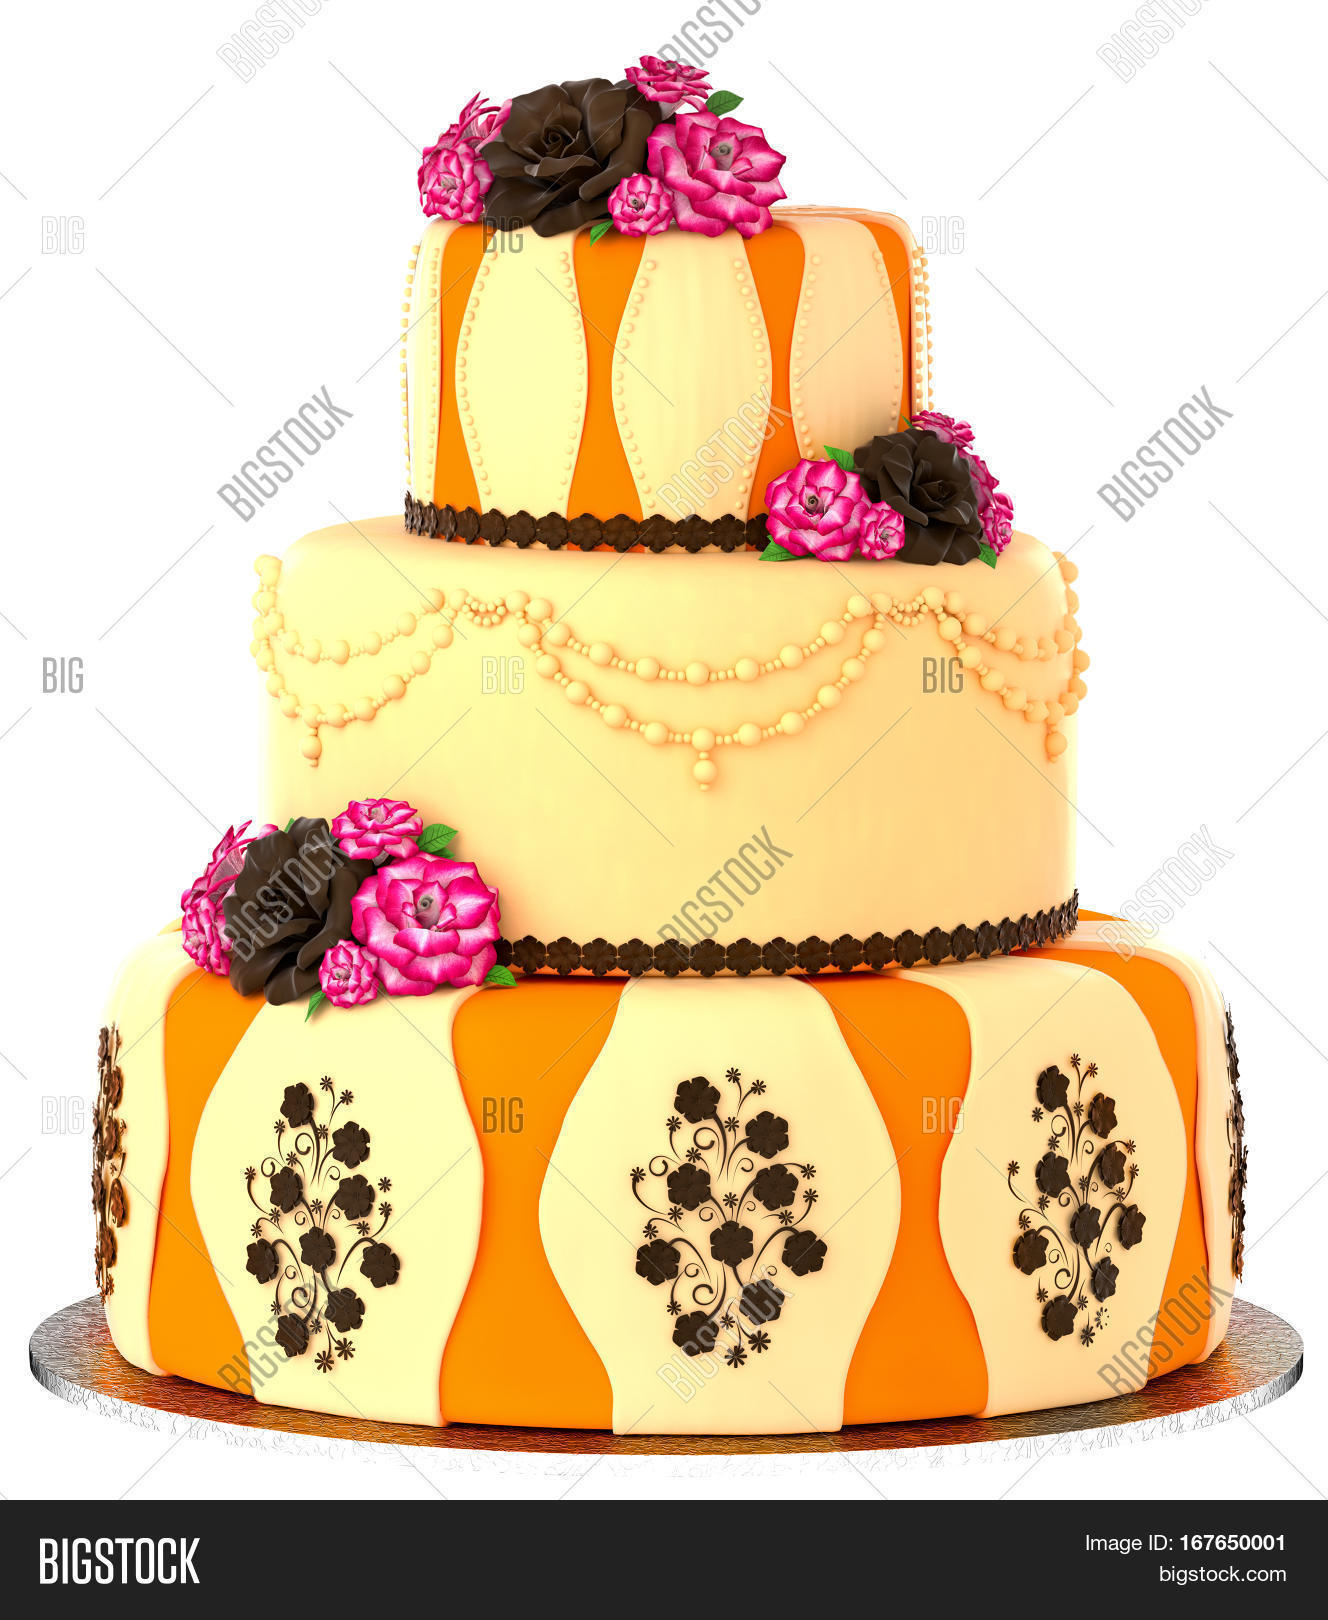 Three Tier Cake 3 Image & Photo (Free Trial) | Bigstock